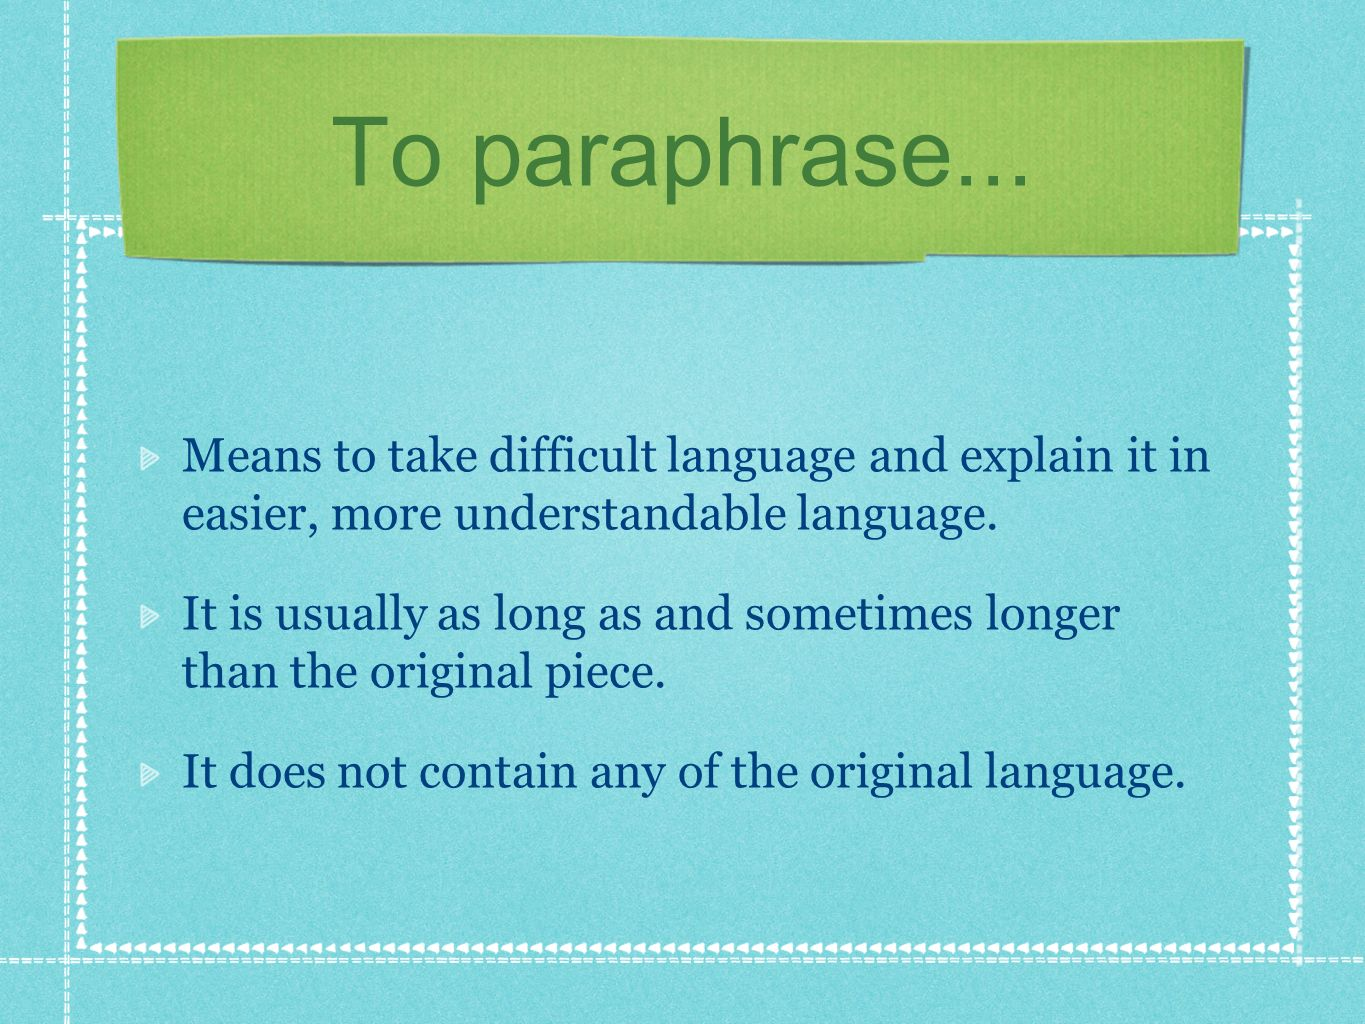 To paraphrase... Means to take difficult language and explain it in easier, more understandable language.